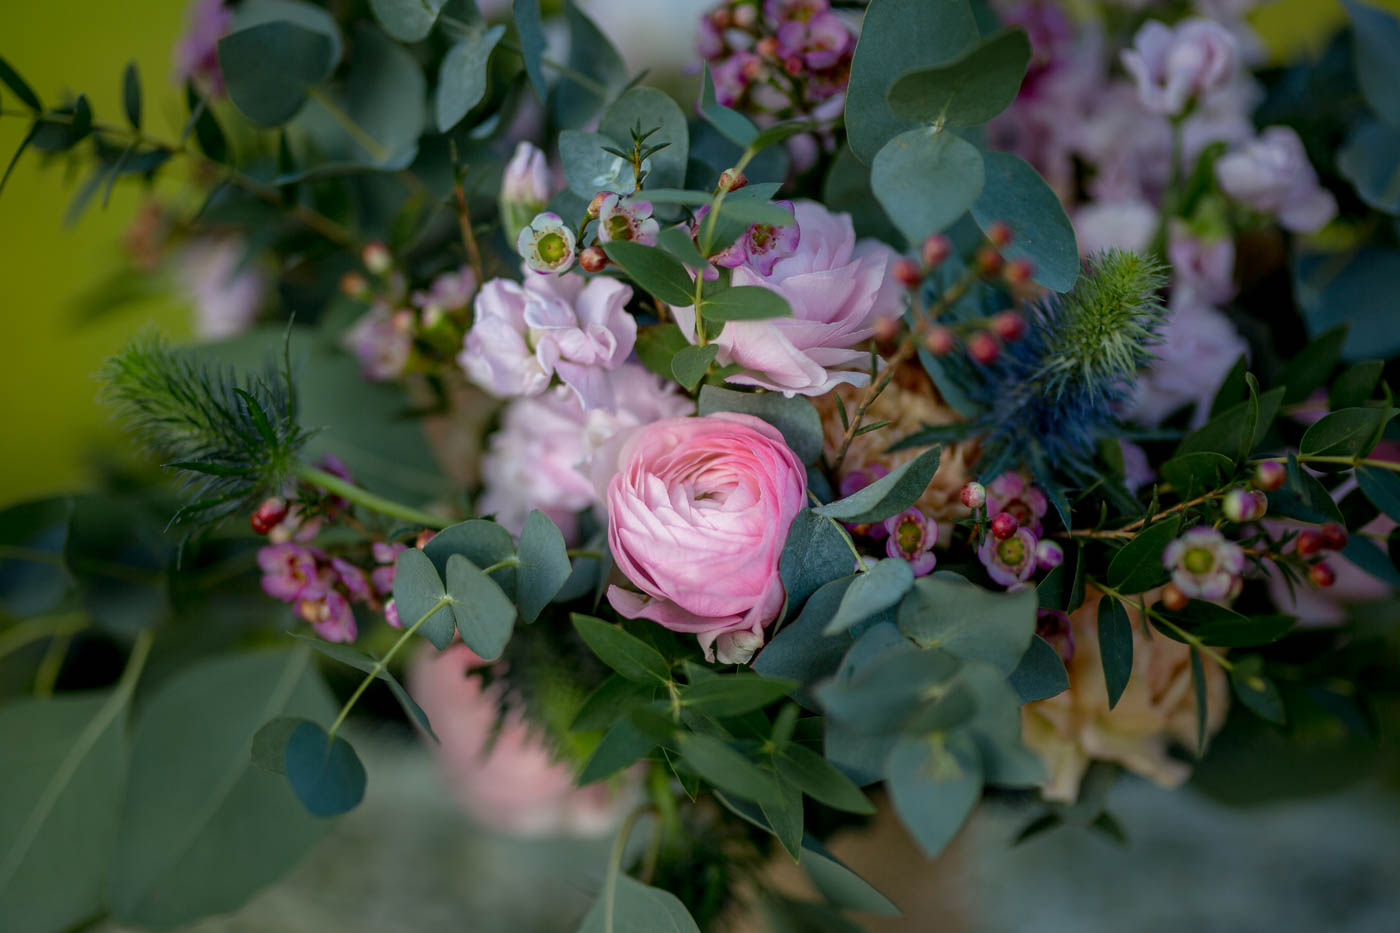 winter wedding bouquet pink ranunculus eryngium, thistle pink wax flower florist stocks dorset wedding sopley mill